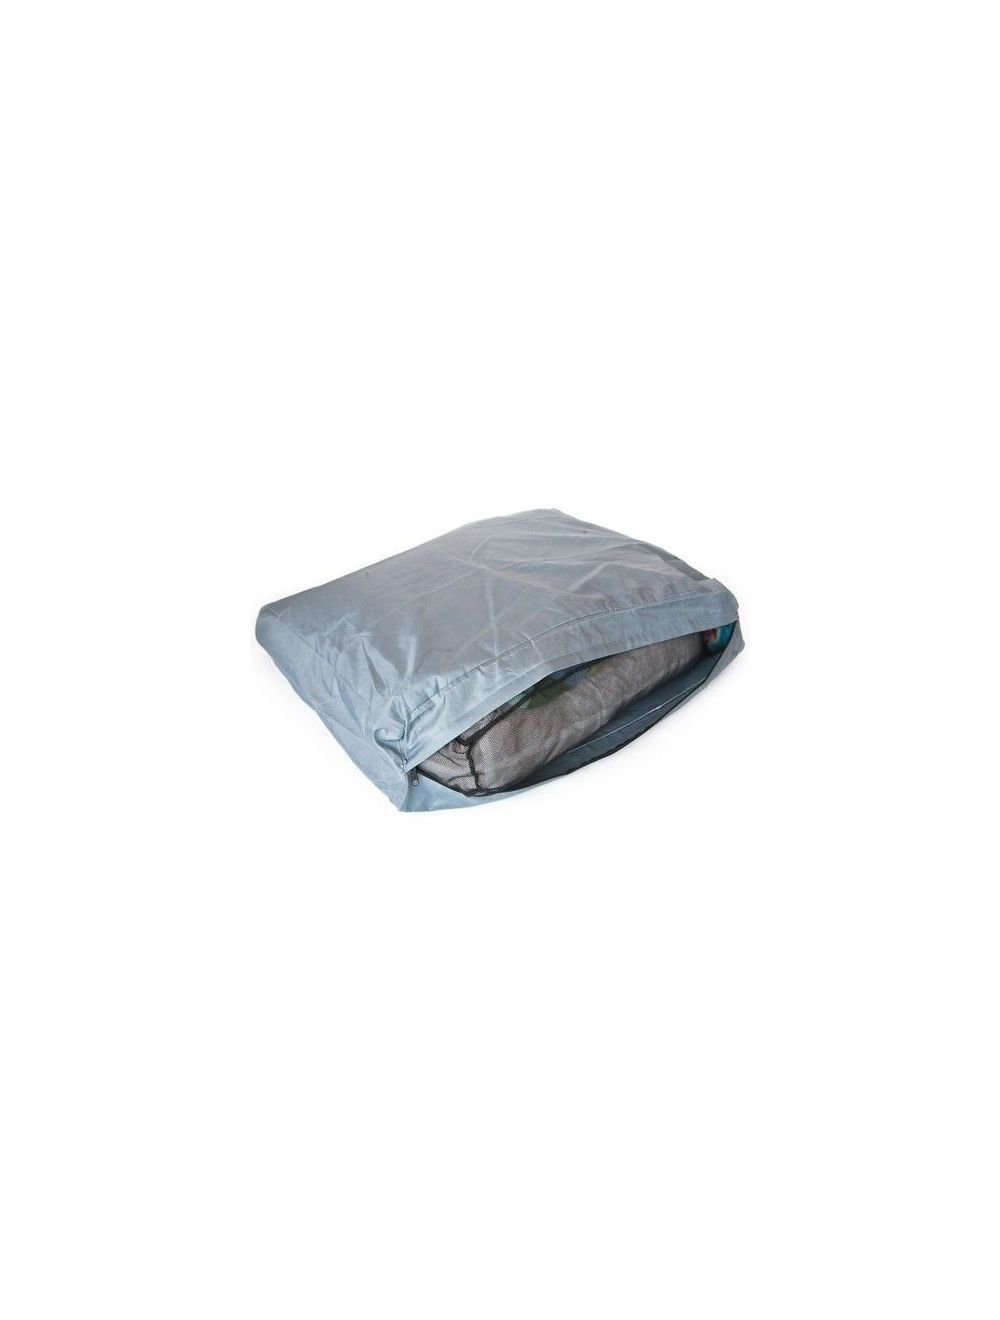 Protector Impermeable para Cama Molly Mutt small